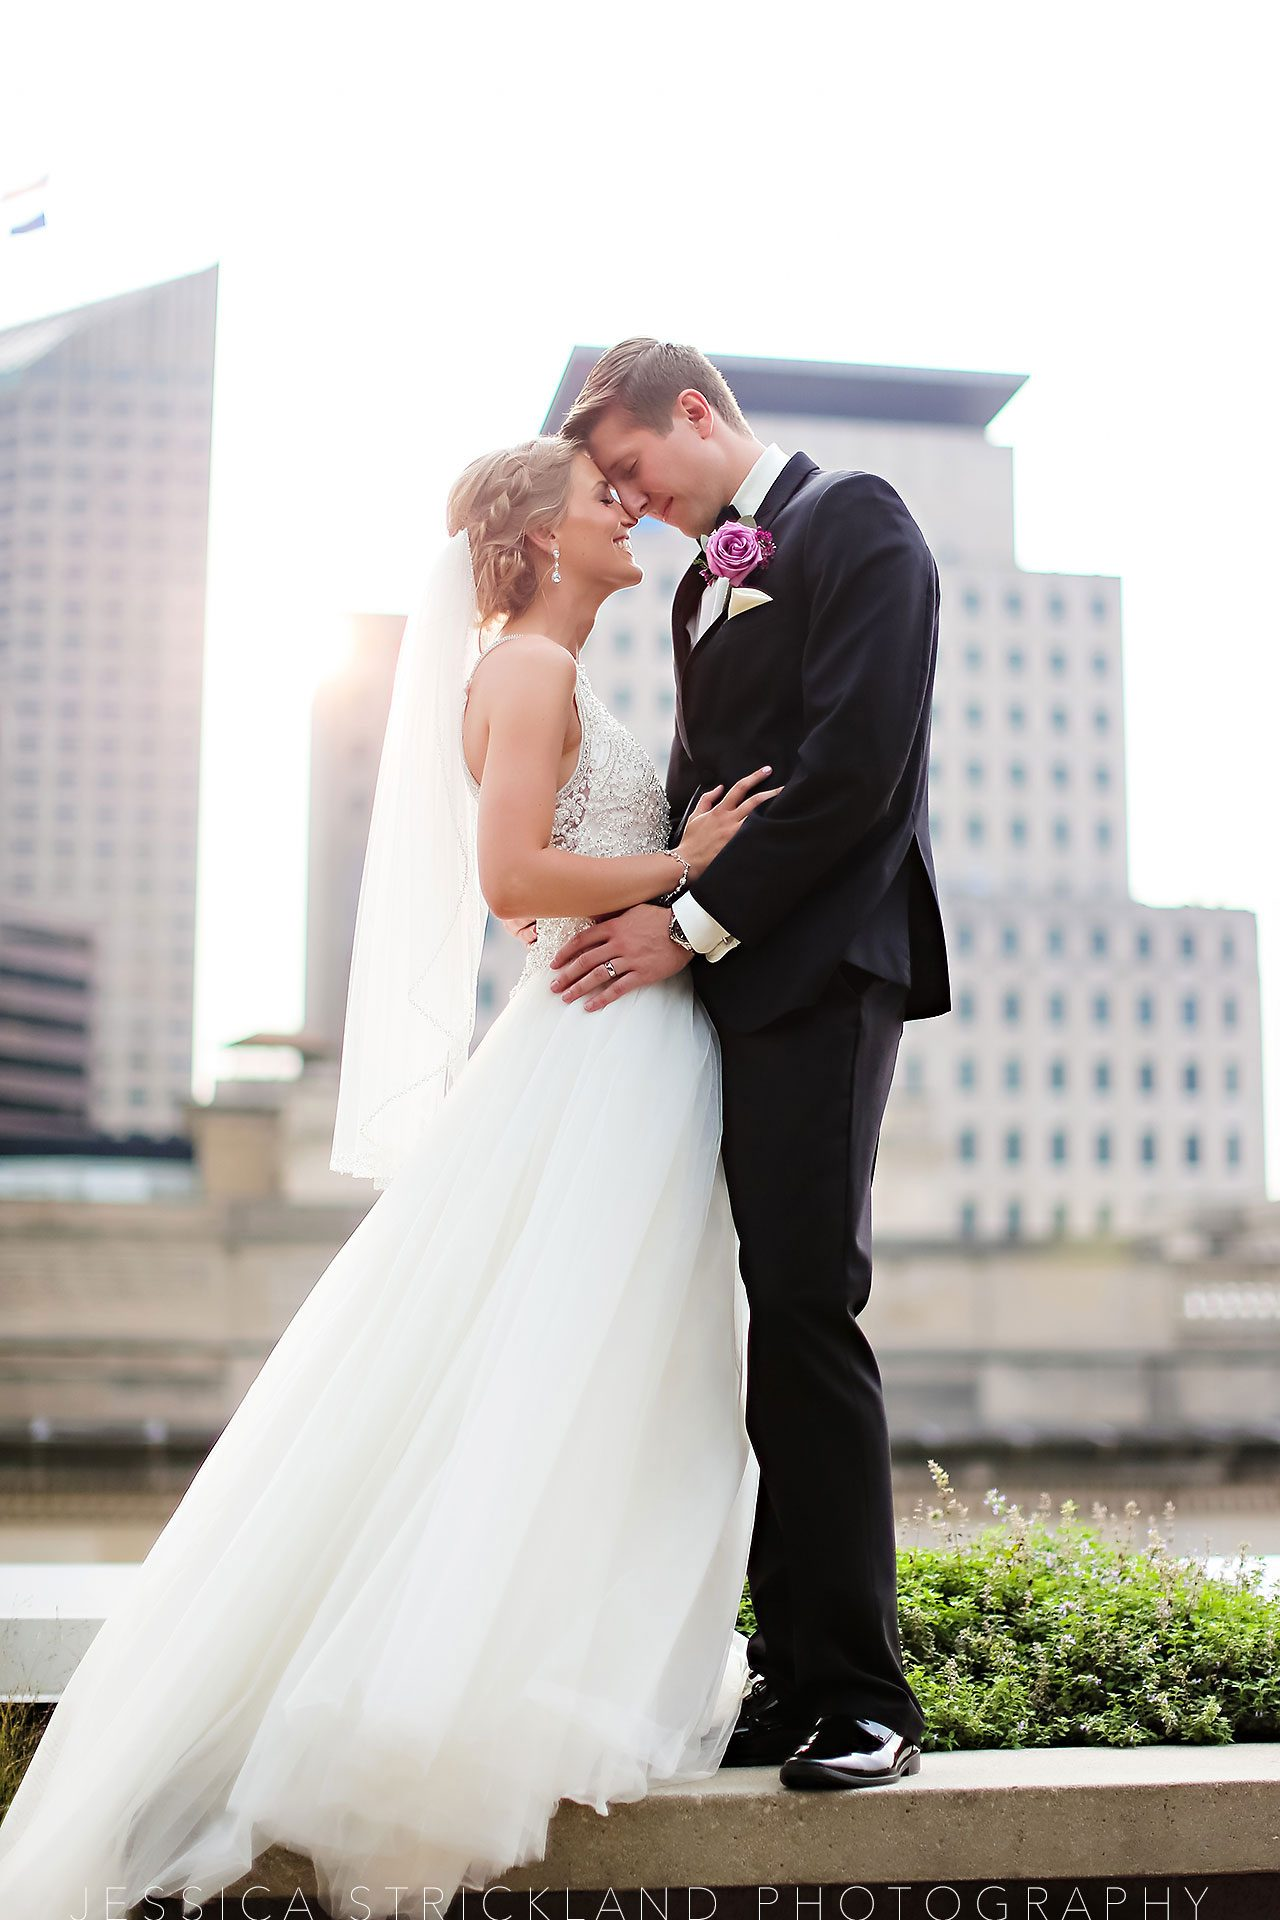 Serra Alex Regions Tower Indianapolis Wedding 226 watermarked